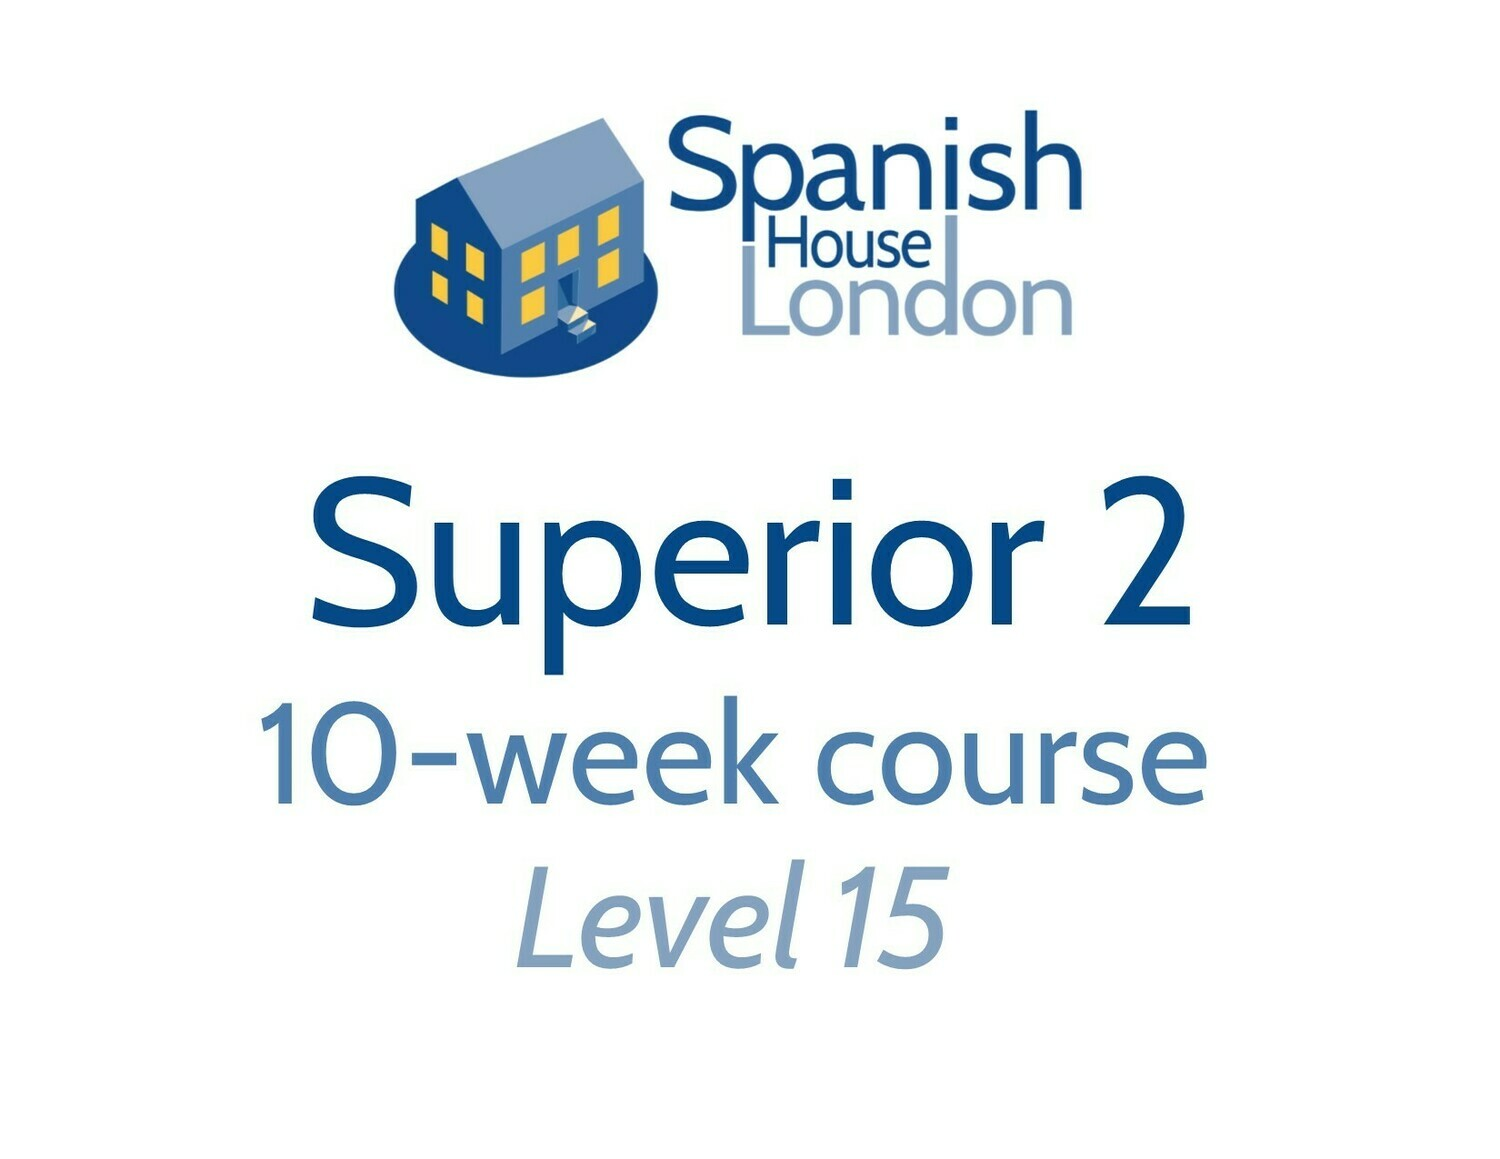 Superior 2 Course starting on 31st March at 7.30pm in Clapham North